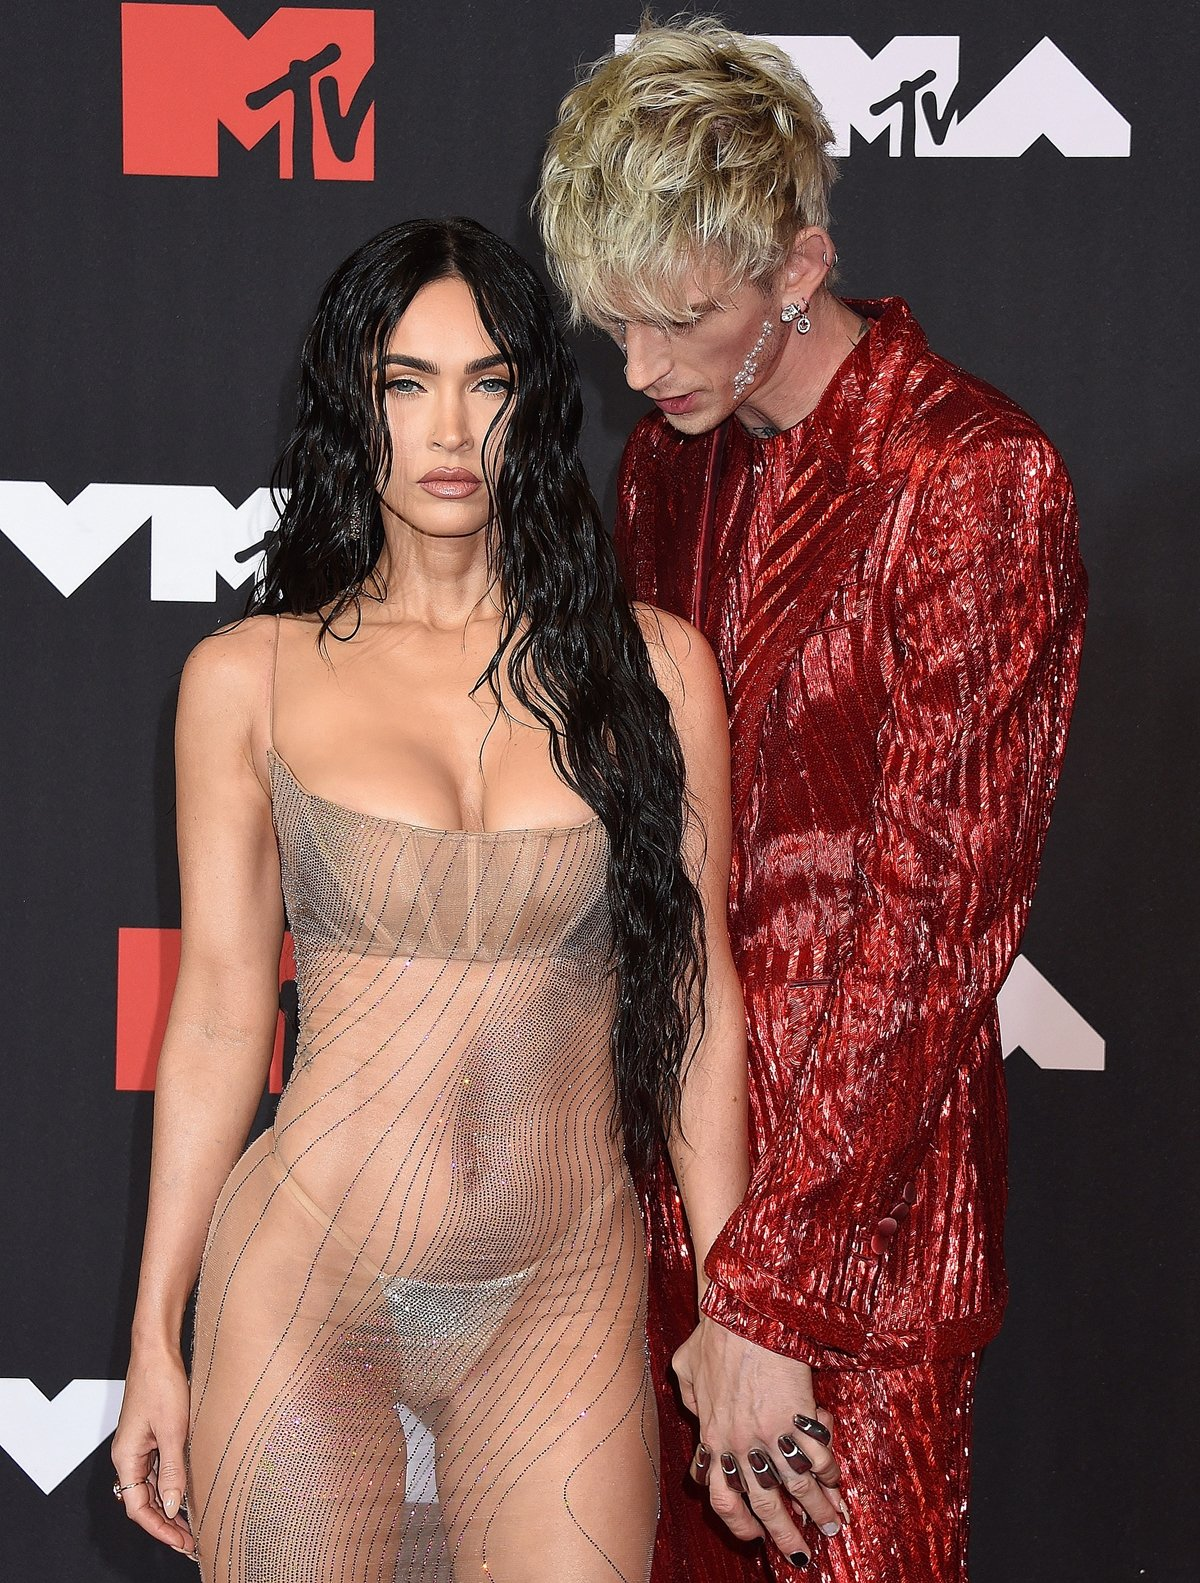 Machine Gun Kelly checking out her girlfriend Megan Fox's naked dress and embellished thong at the 2021 MTV Video Music Awards